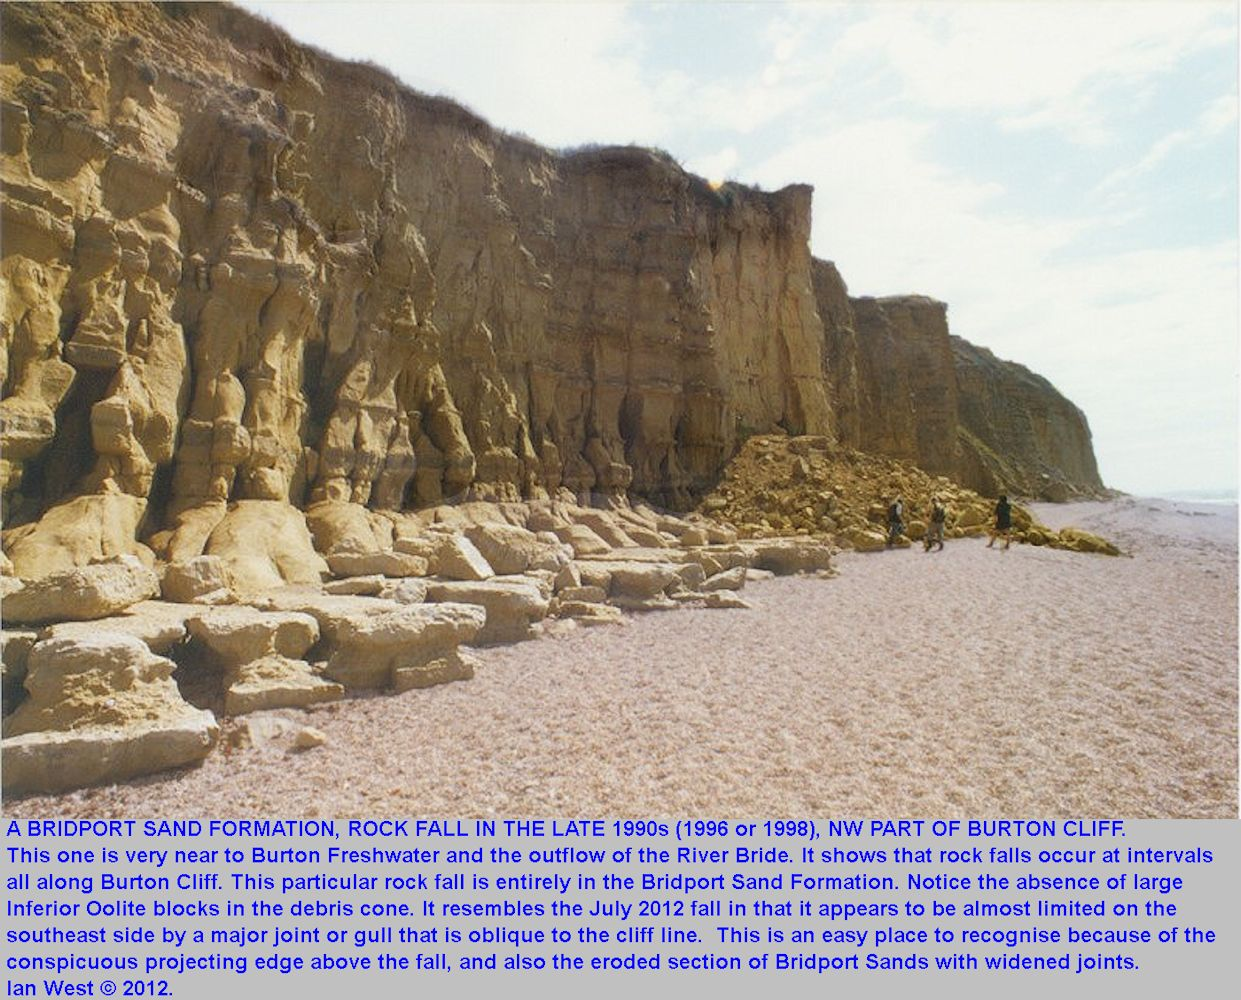 A rock fall of Bridport Sand Formation near the northwestern end of Burton Cliff, Burton Bradstock, Dorset, in the late 1990s